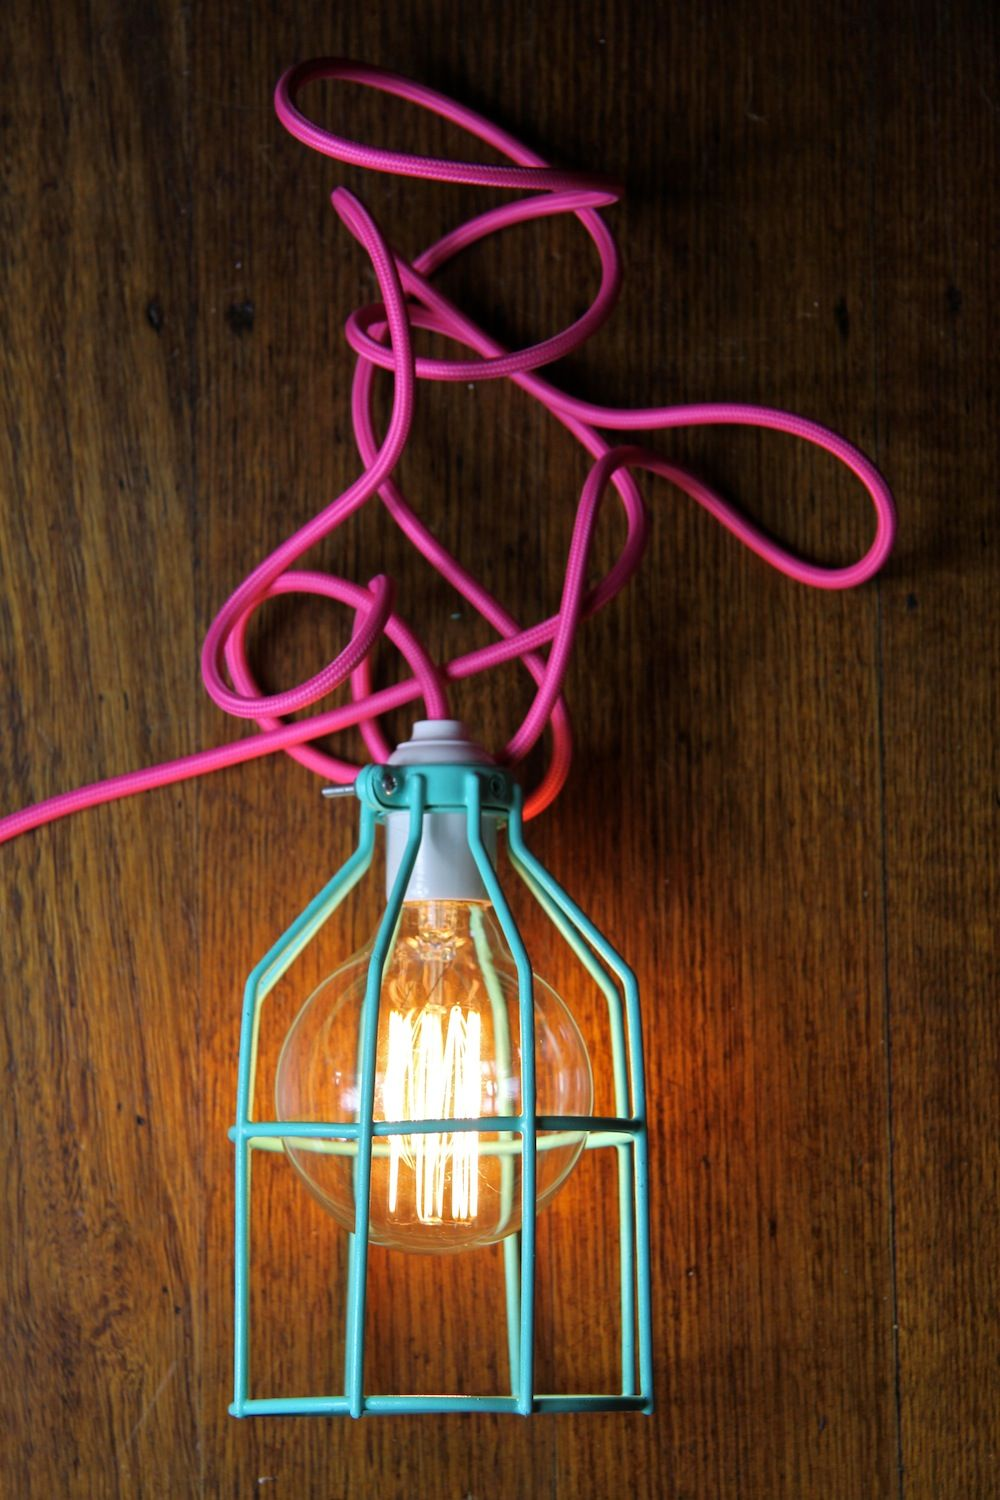 This Is A Cage Light Pendant With A 3m Cord Length And Wall Plug Name Bright Lights Cord Cage Pendant Light Cage Light Hanging Lights